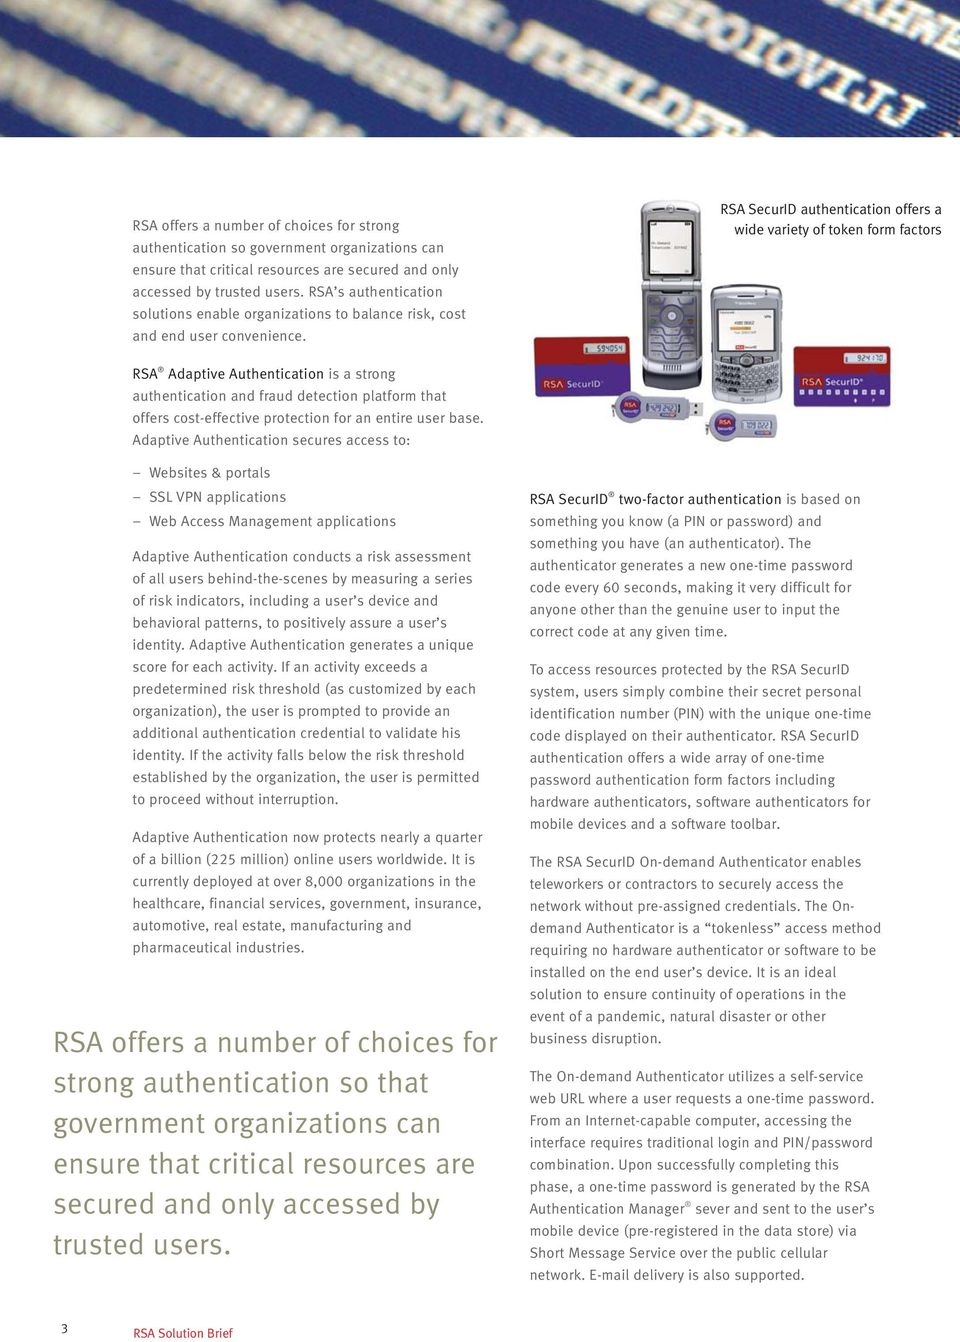 RSA SecurID authentication offers a wide variety of token form factors RSA Adaptive Authentication is a strong authentication and fraud detection platform that offers cost-effective protection for an